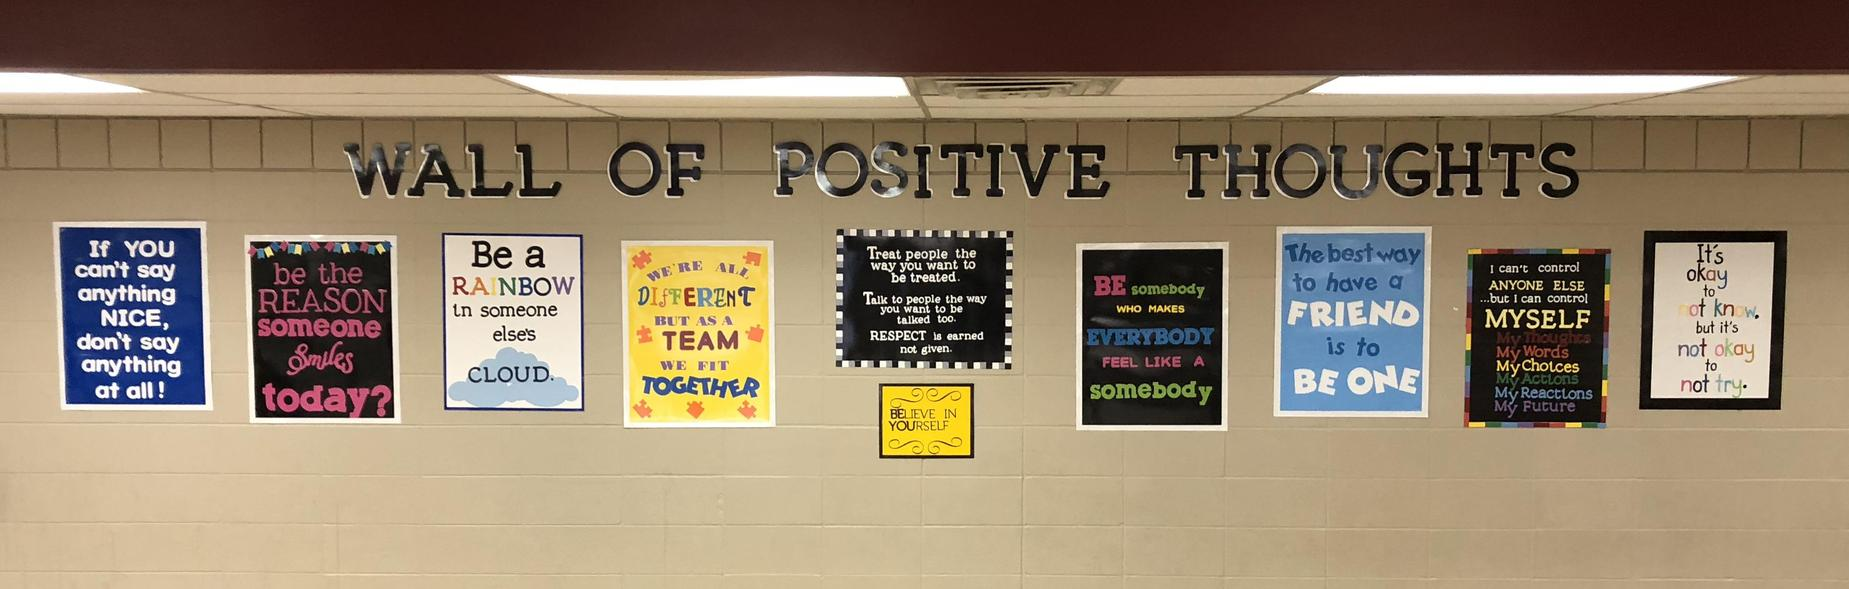 Wall of Positive Thoughts